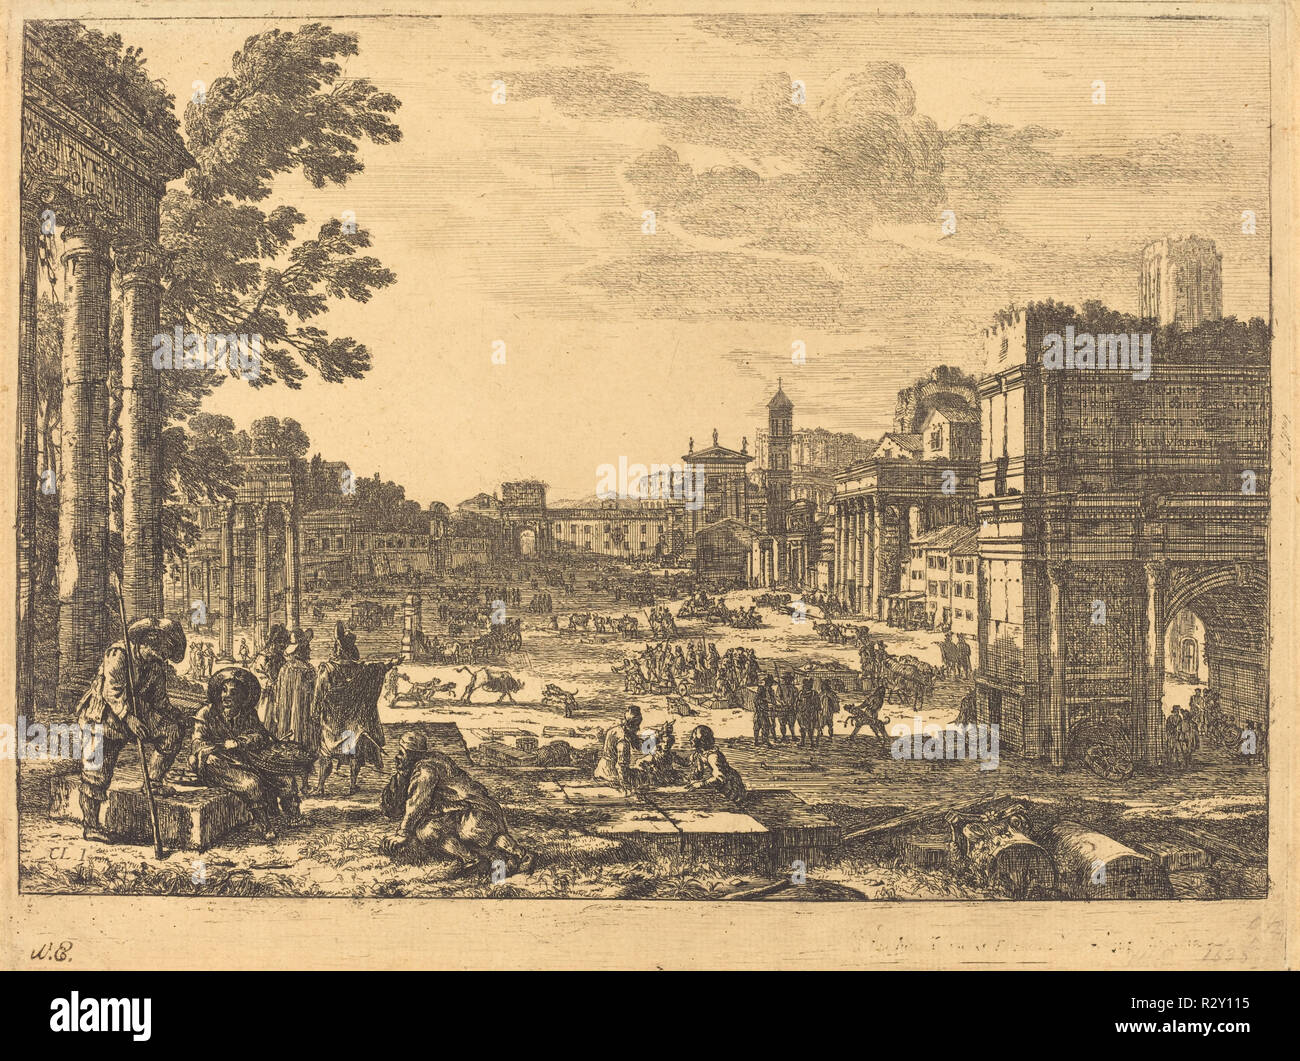 The Roman Forum (Le Campo Vaccino). Dated: 1636. Medium: etching. Museum: National Gallery of Art, Washington DC. Author: Claude Lorrain. - Stock Image